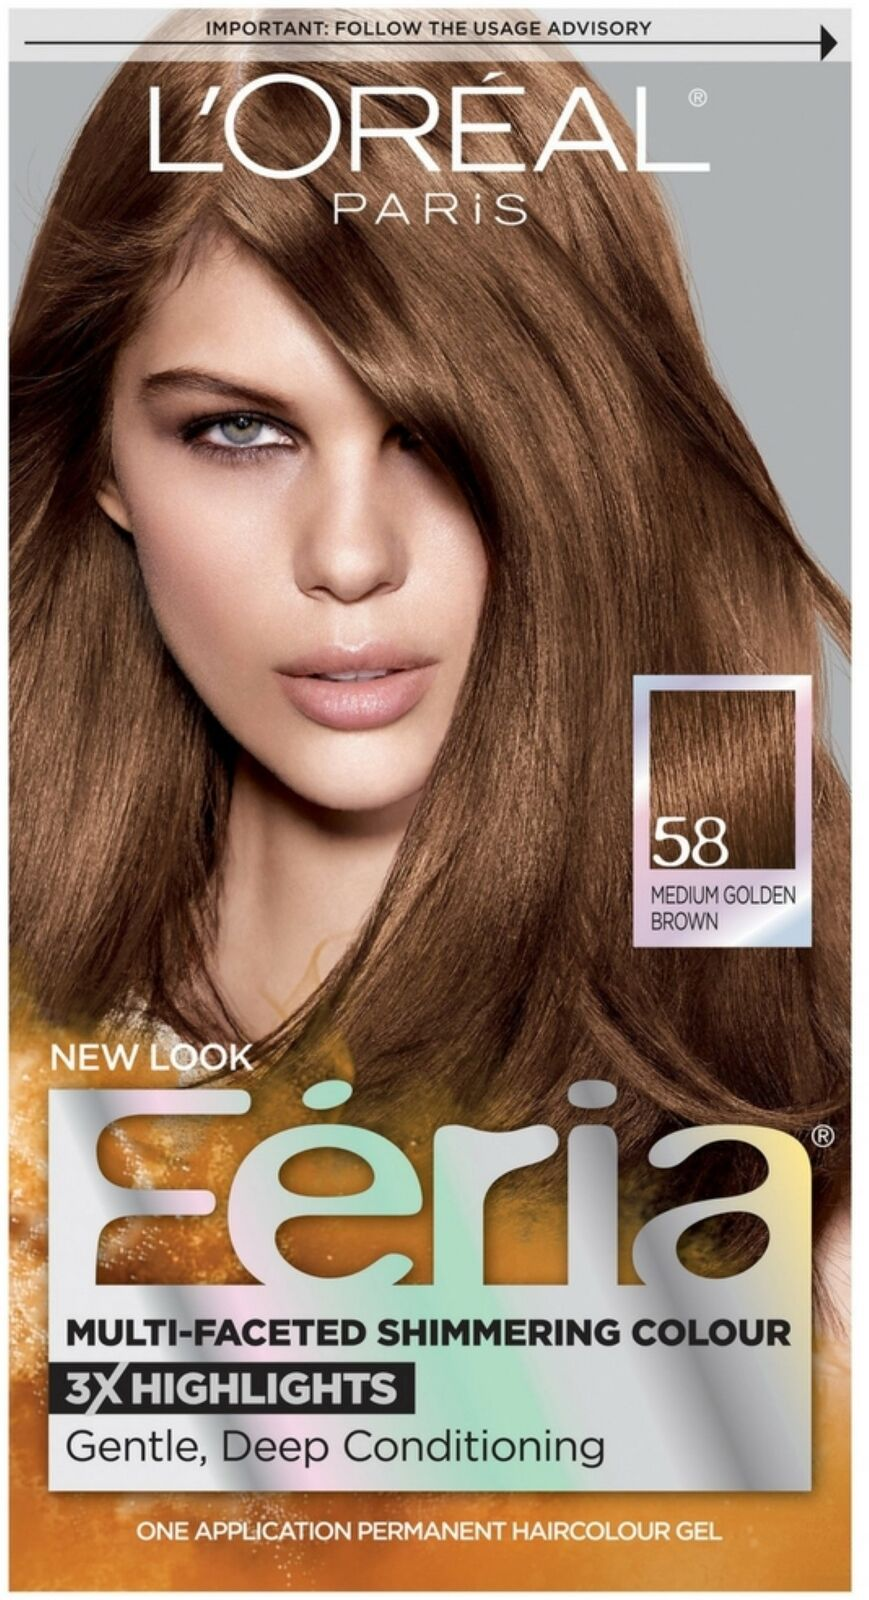 The look at home using l oreal paris feria smokey pastels in p2 smokey - L Oreal Feria Haircolor Gel 58 Bronze Shimmer Medium Golden Brown 1